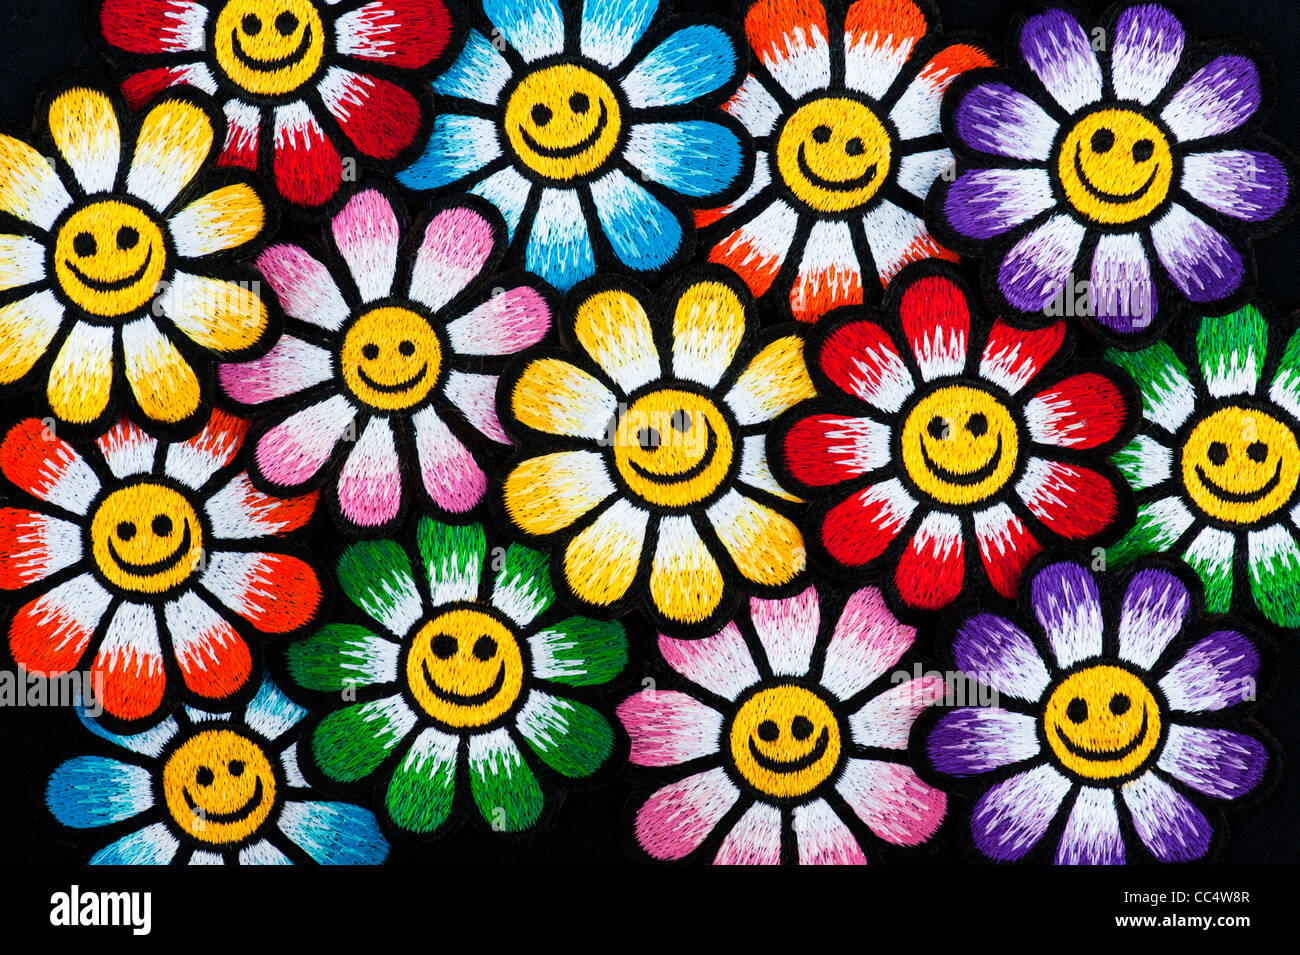 Embroidery iron on patches of multicoloured smiley face flowers on embroidery iron on patches of multicoloured smiley face flowers on a black background voltagebd Gallery